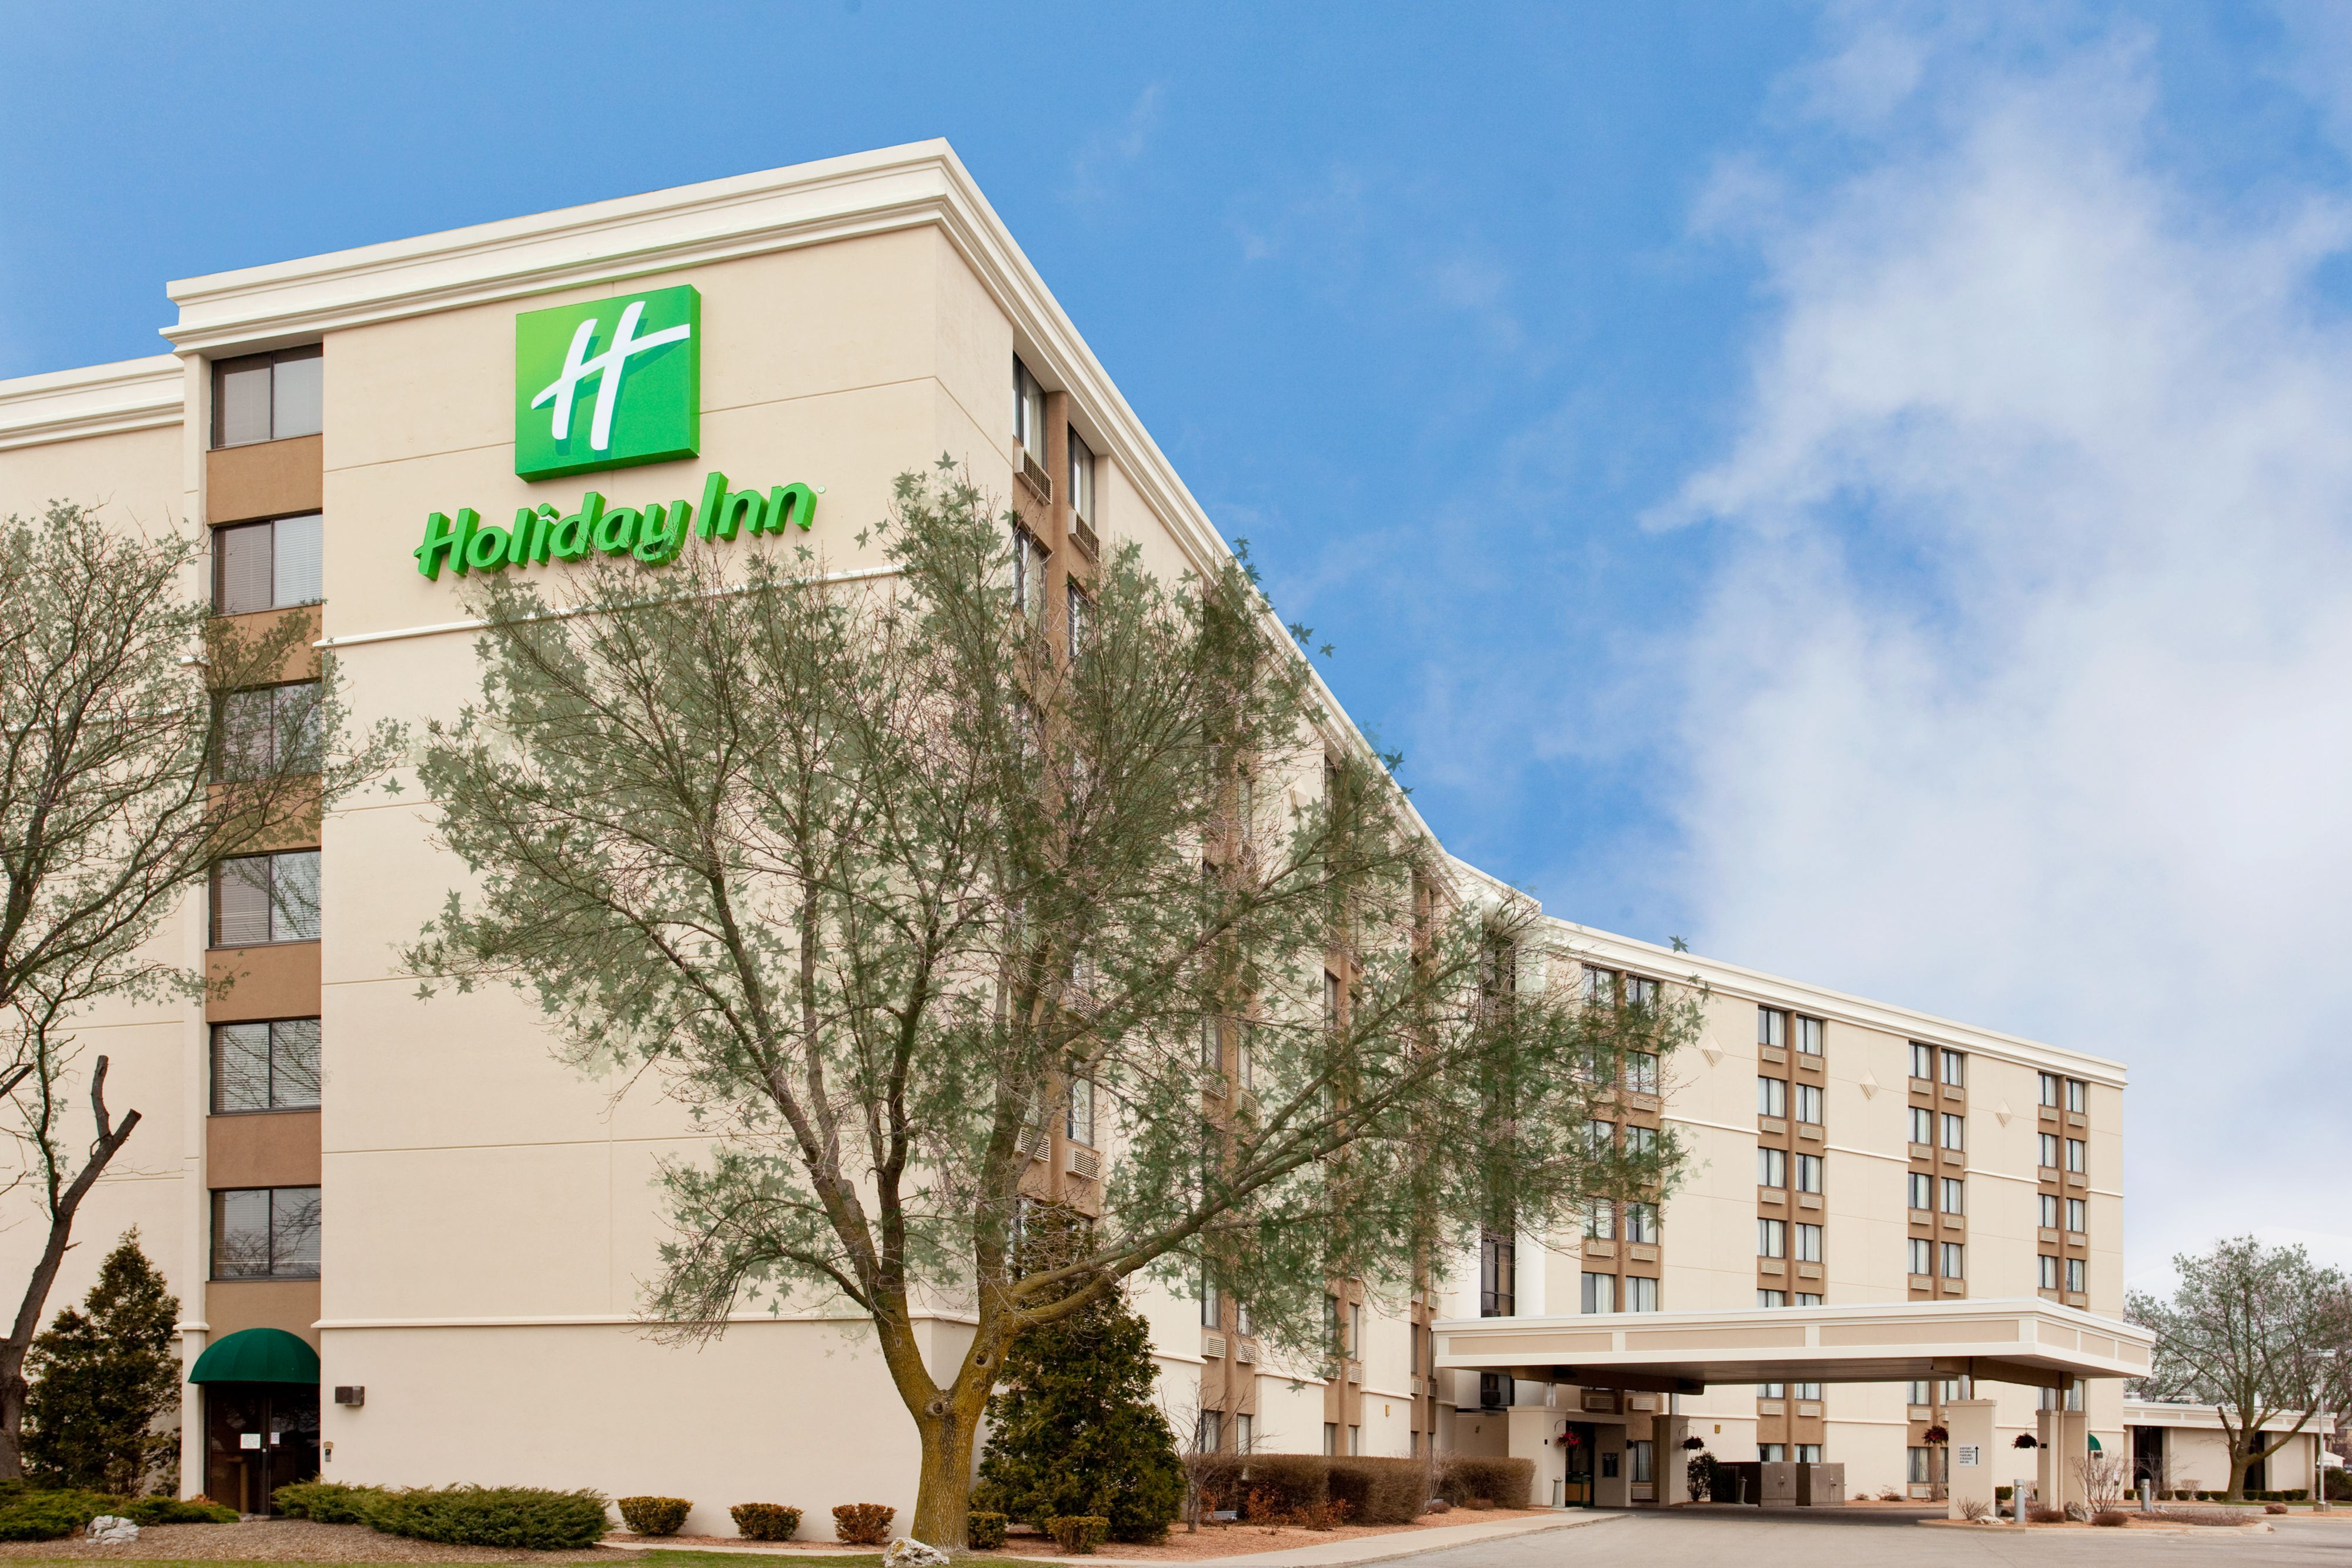 Holiday Inn Rockford(I-90&Rt 20/State St) image 5